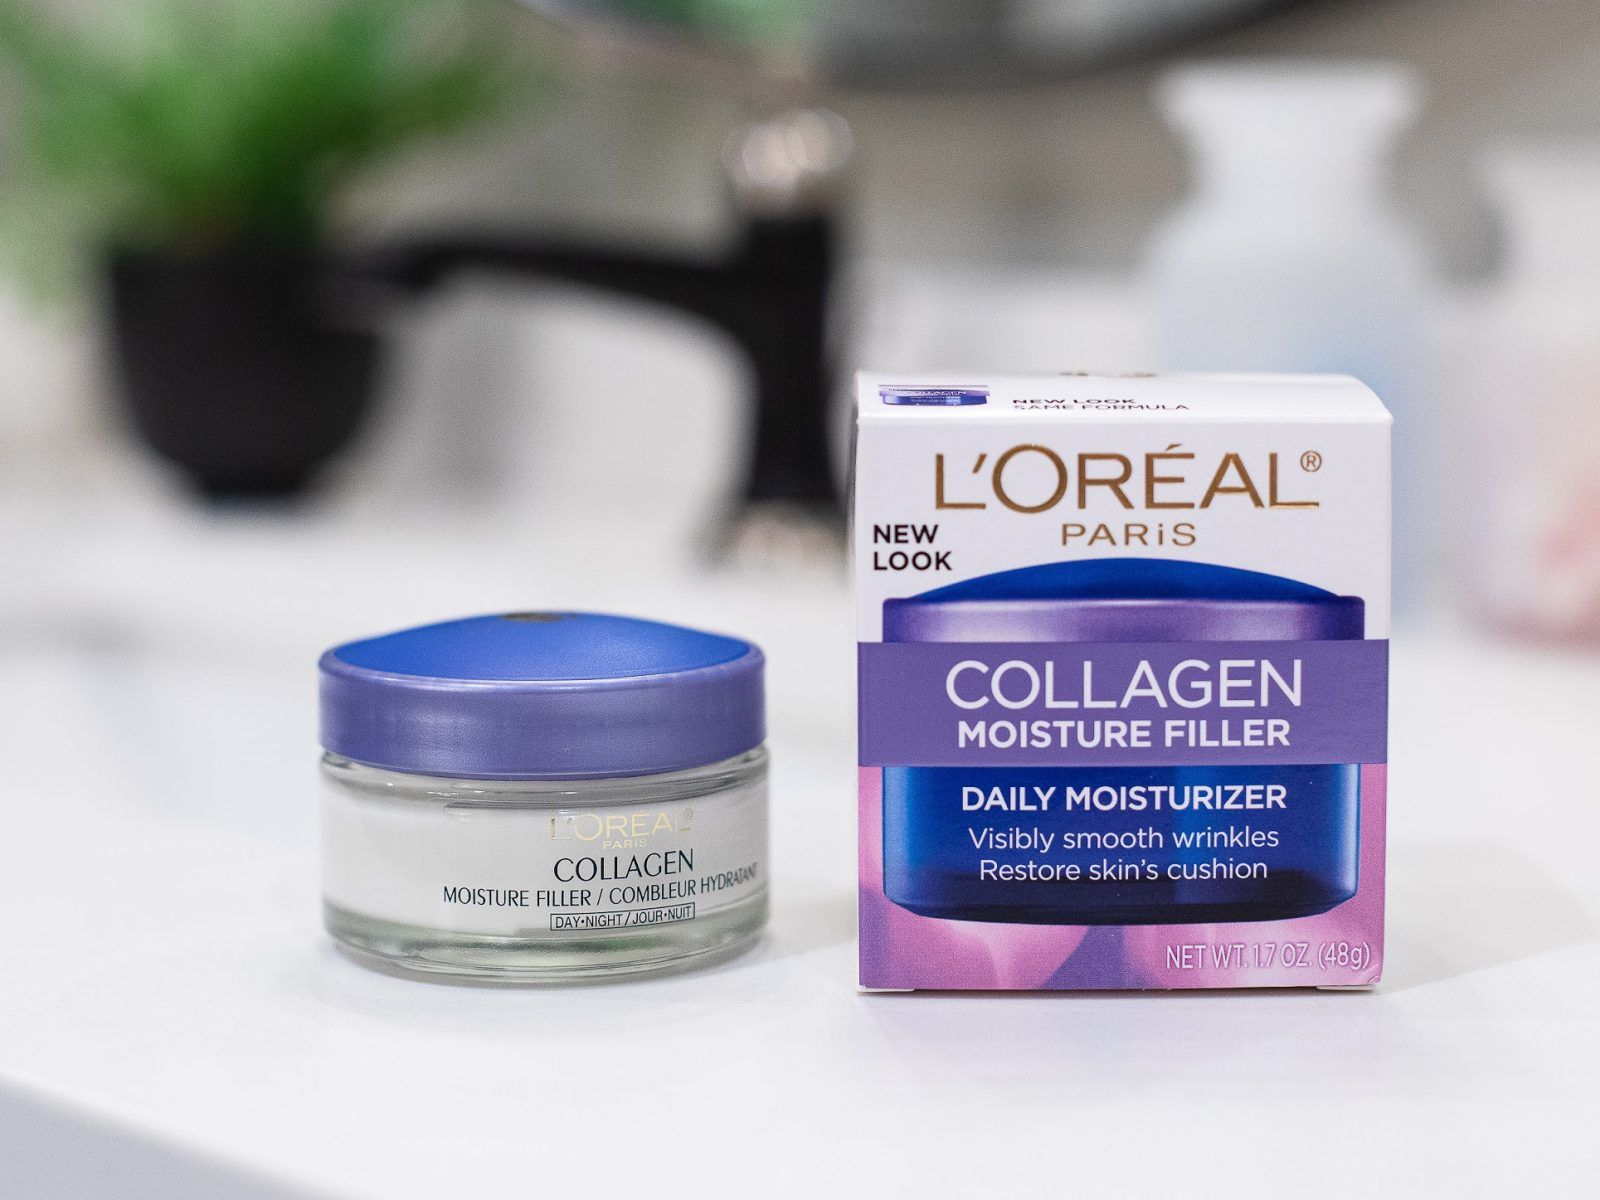 New L'Oreal Skincare Coupon Means Nice Deals At Publix on I Heart Publix 2